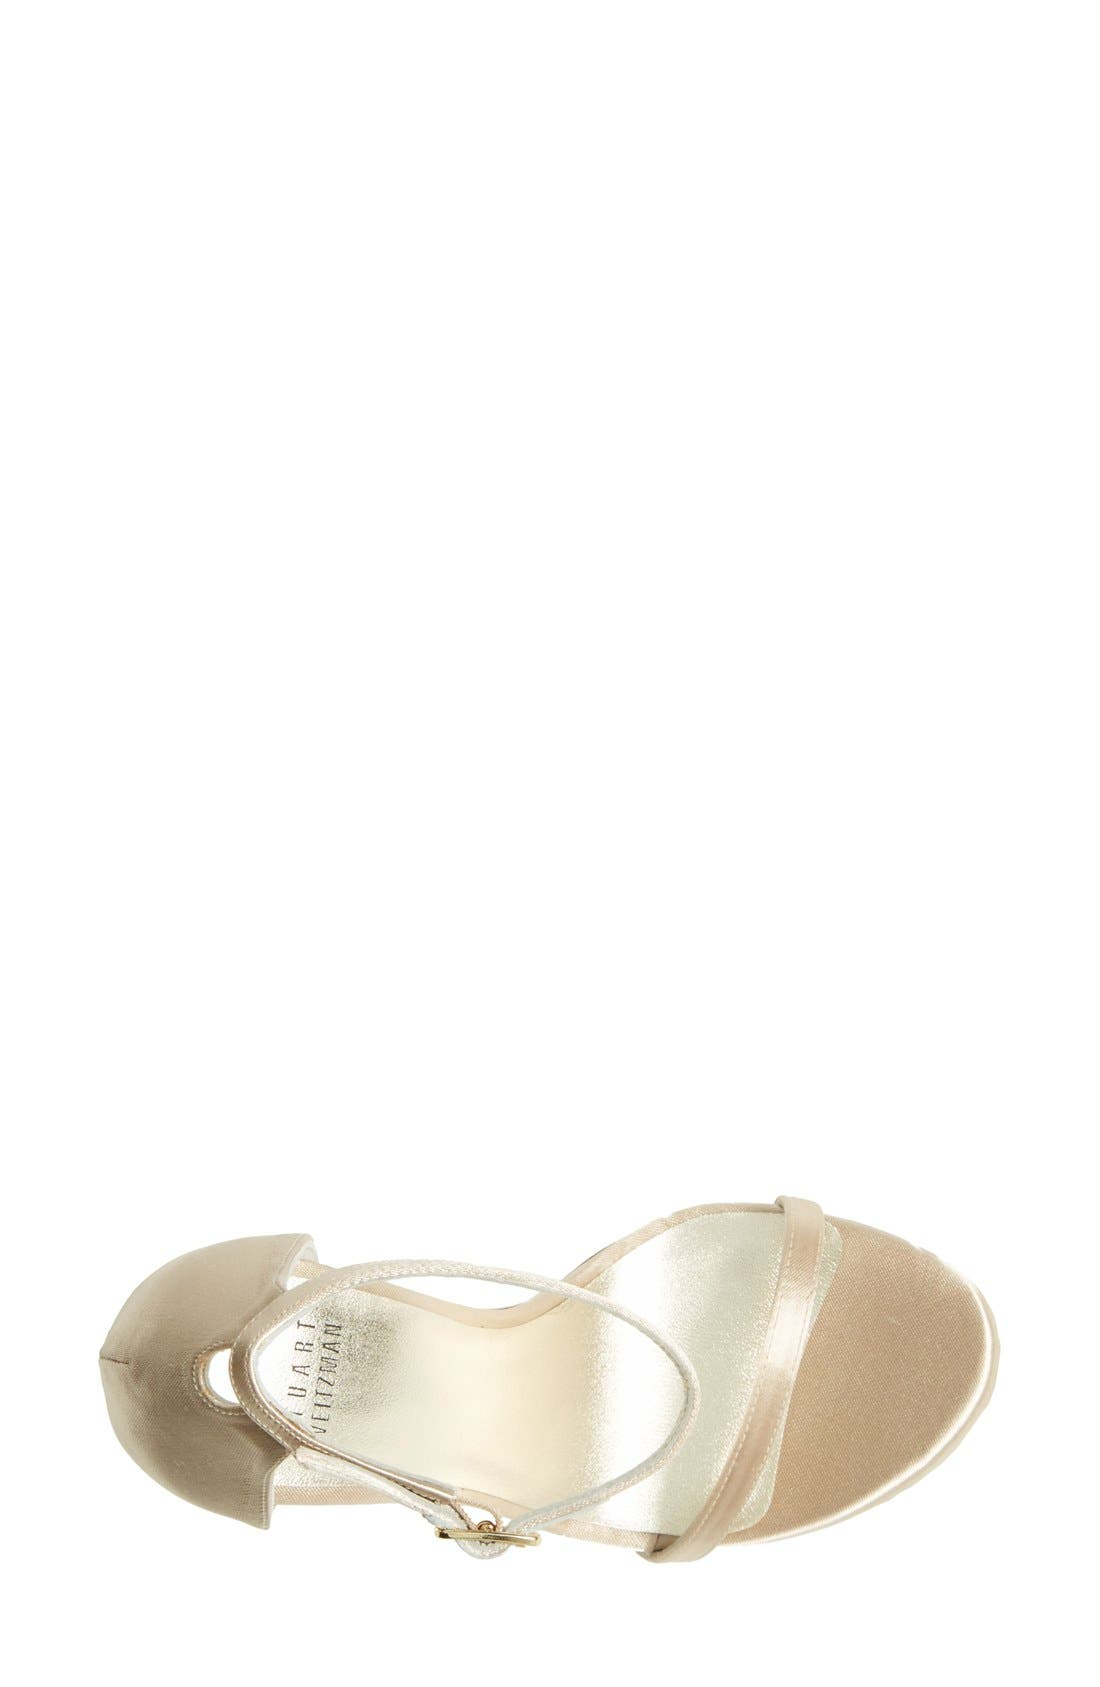 Alternate Image 3  - Stuart Weitzman 'Nudist' Sandal (Women)